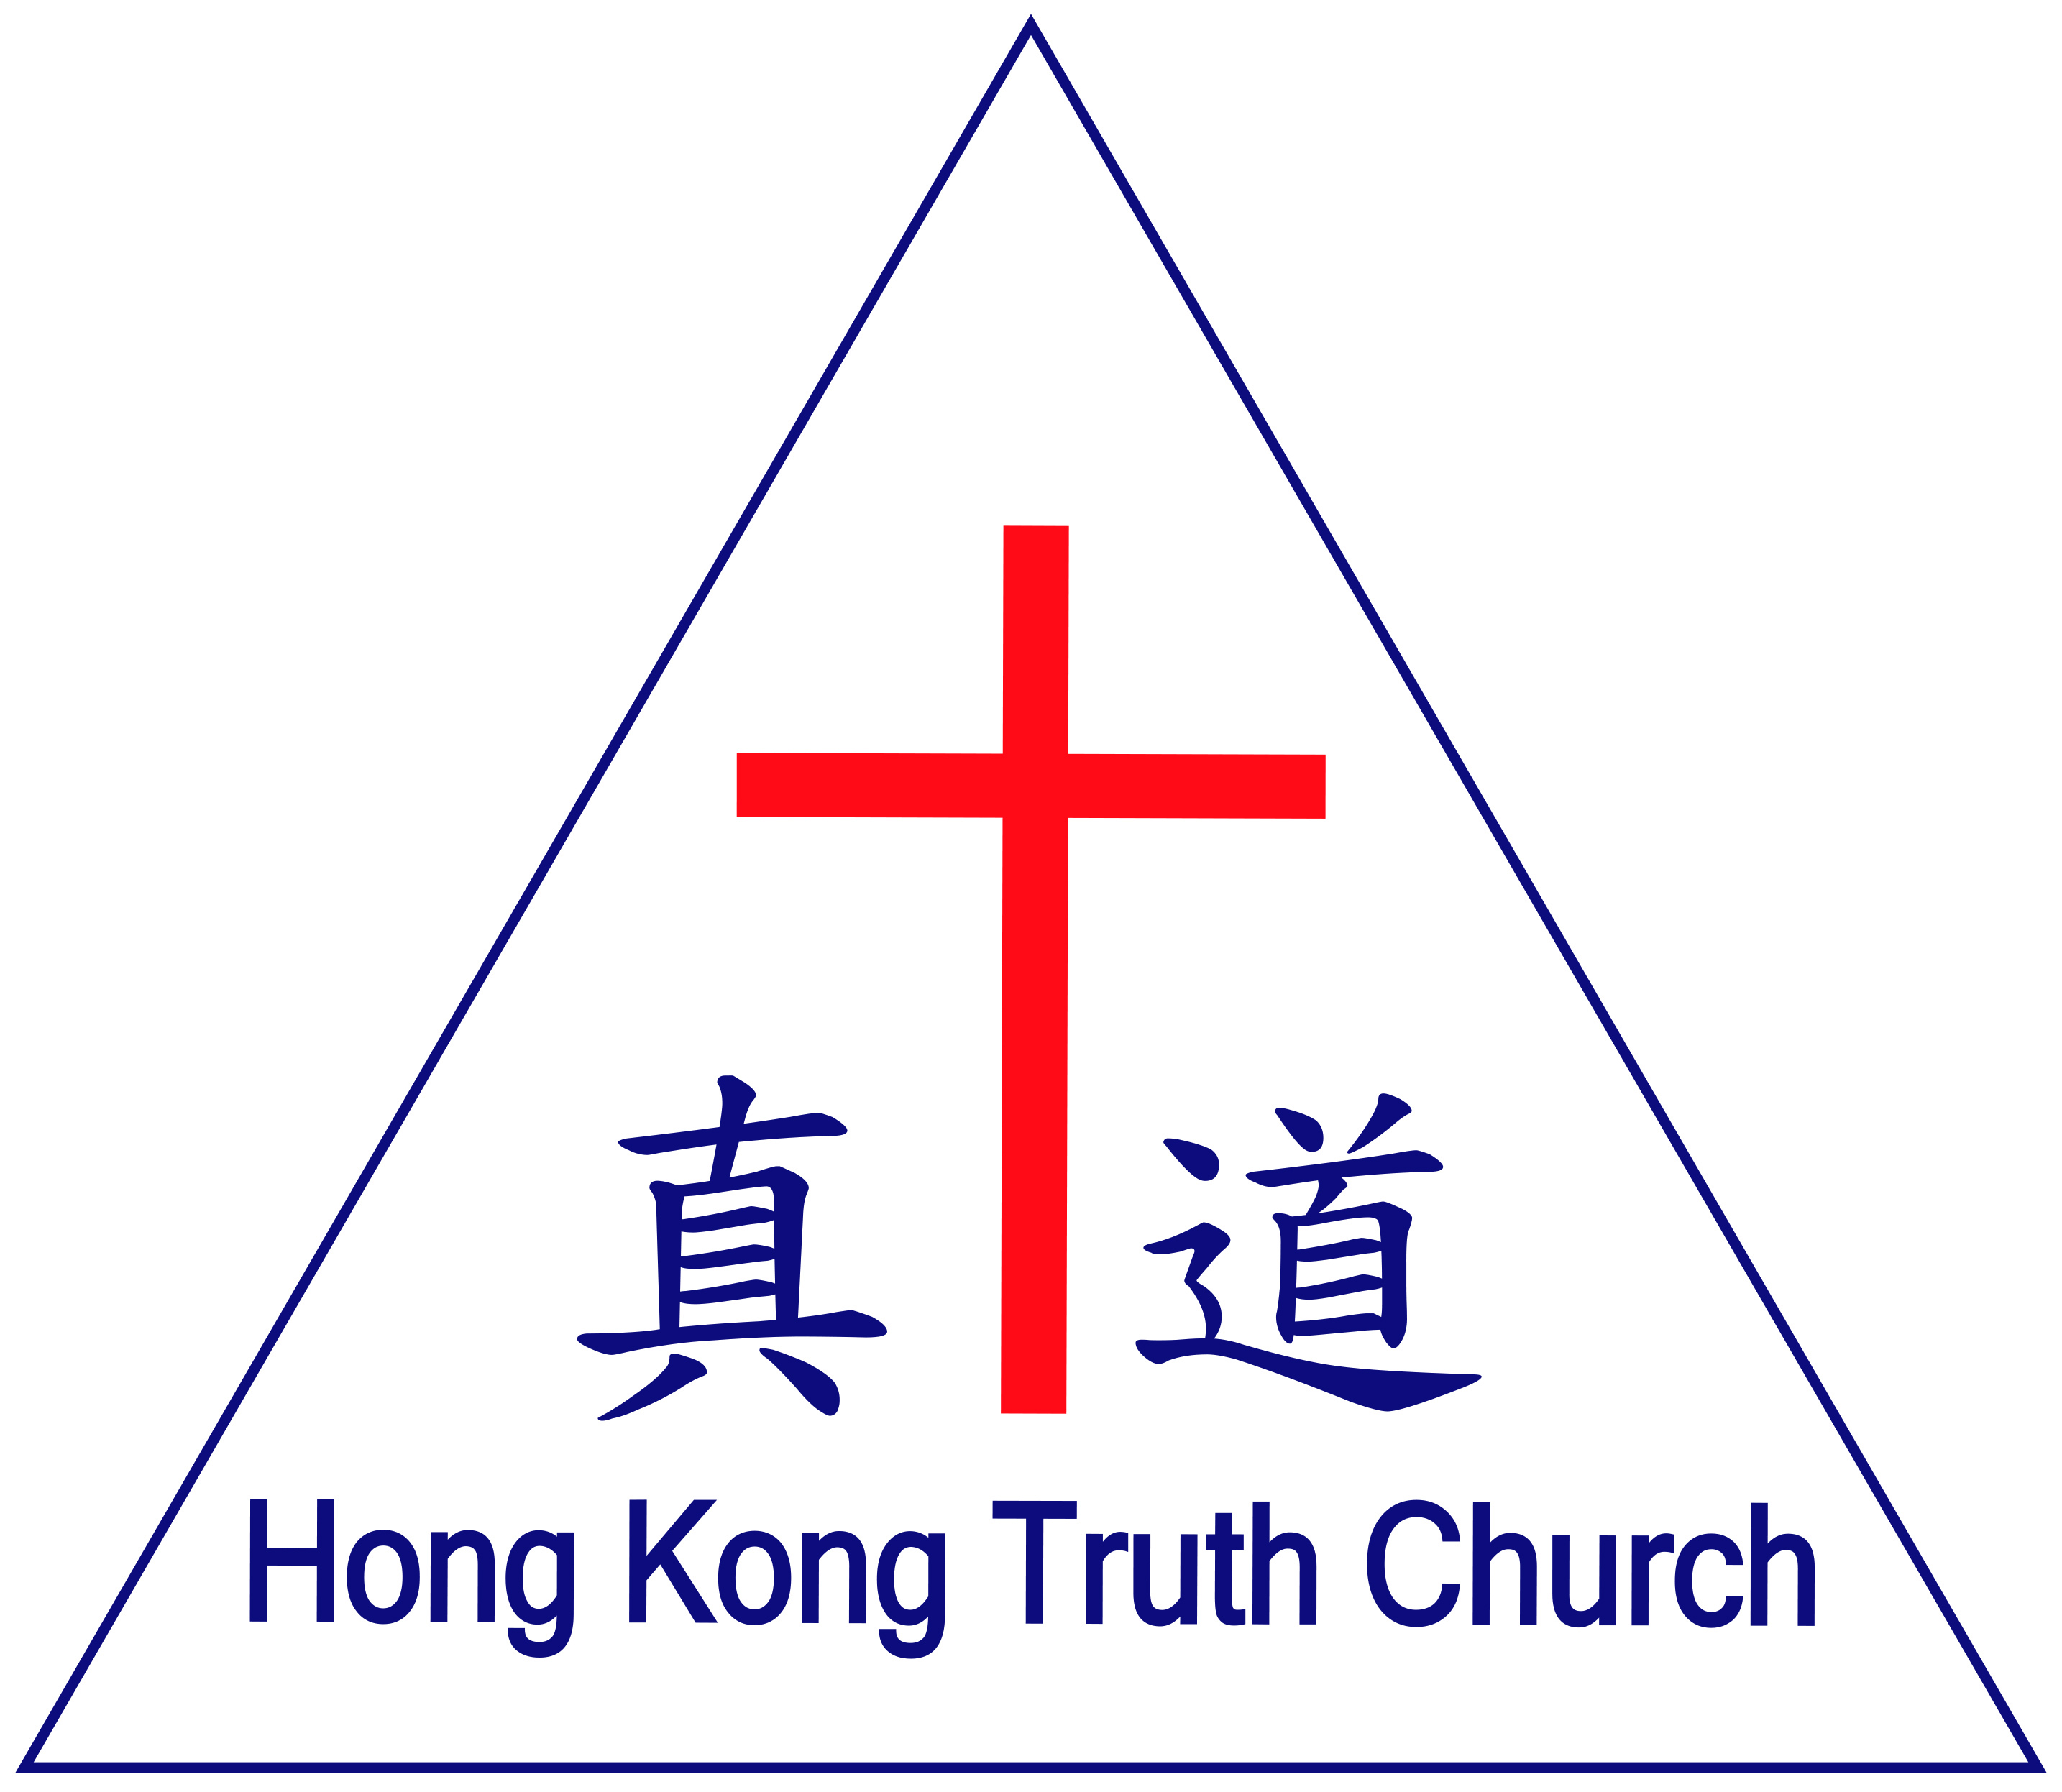 基督教香港真道教會Hong Kong Truth Church